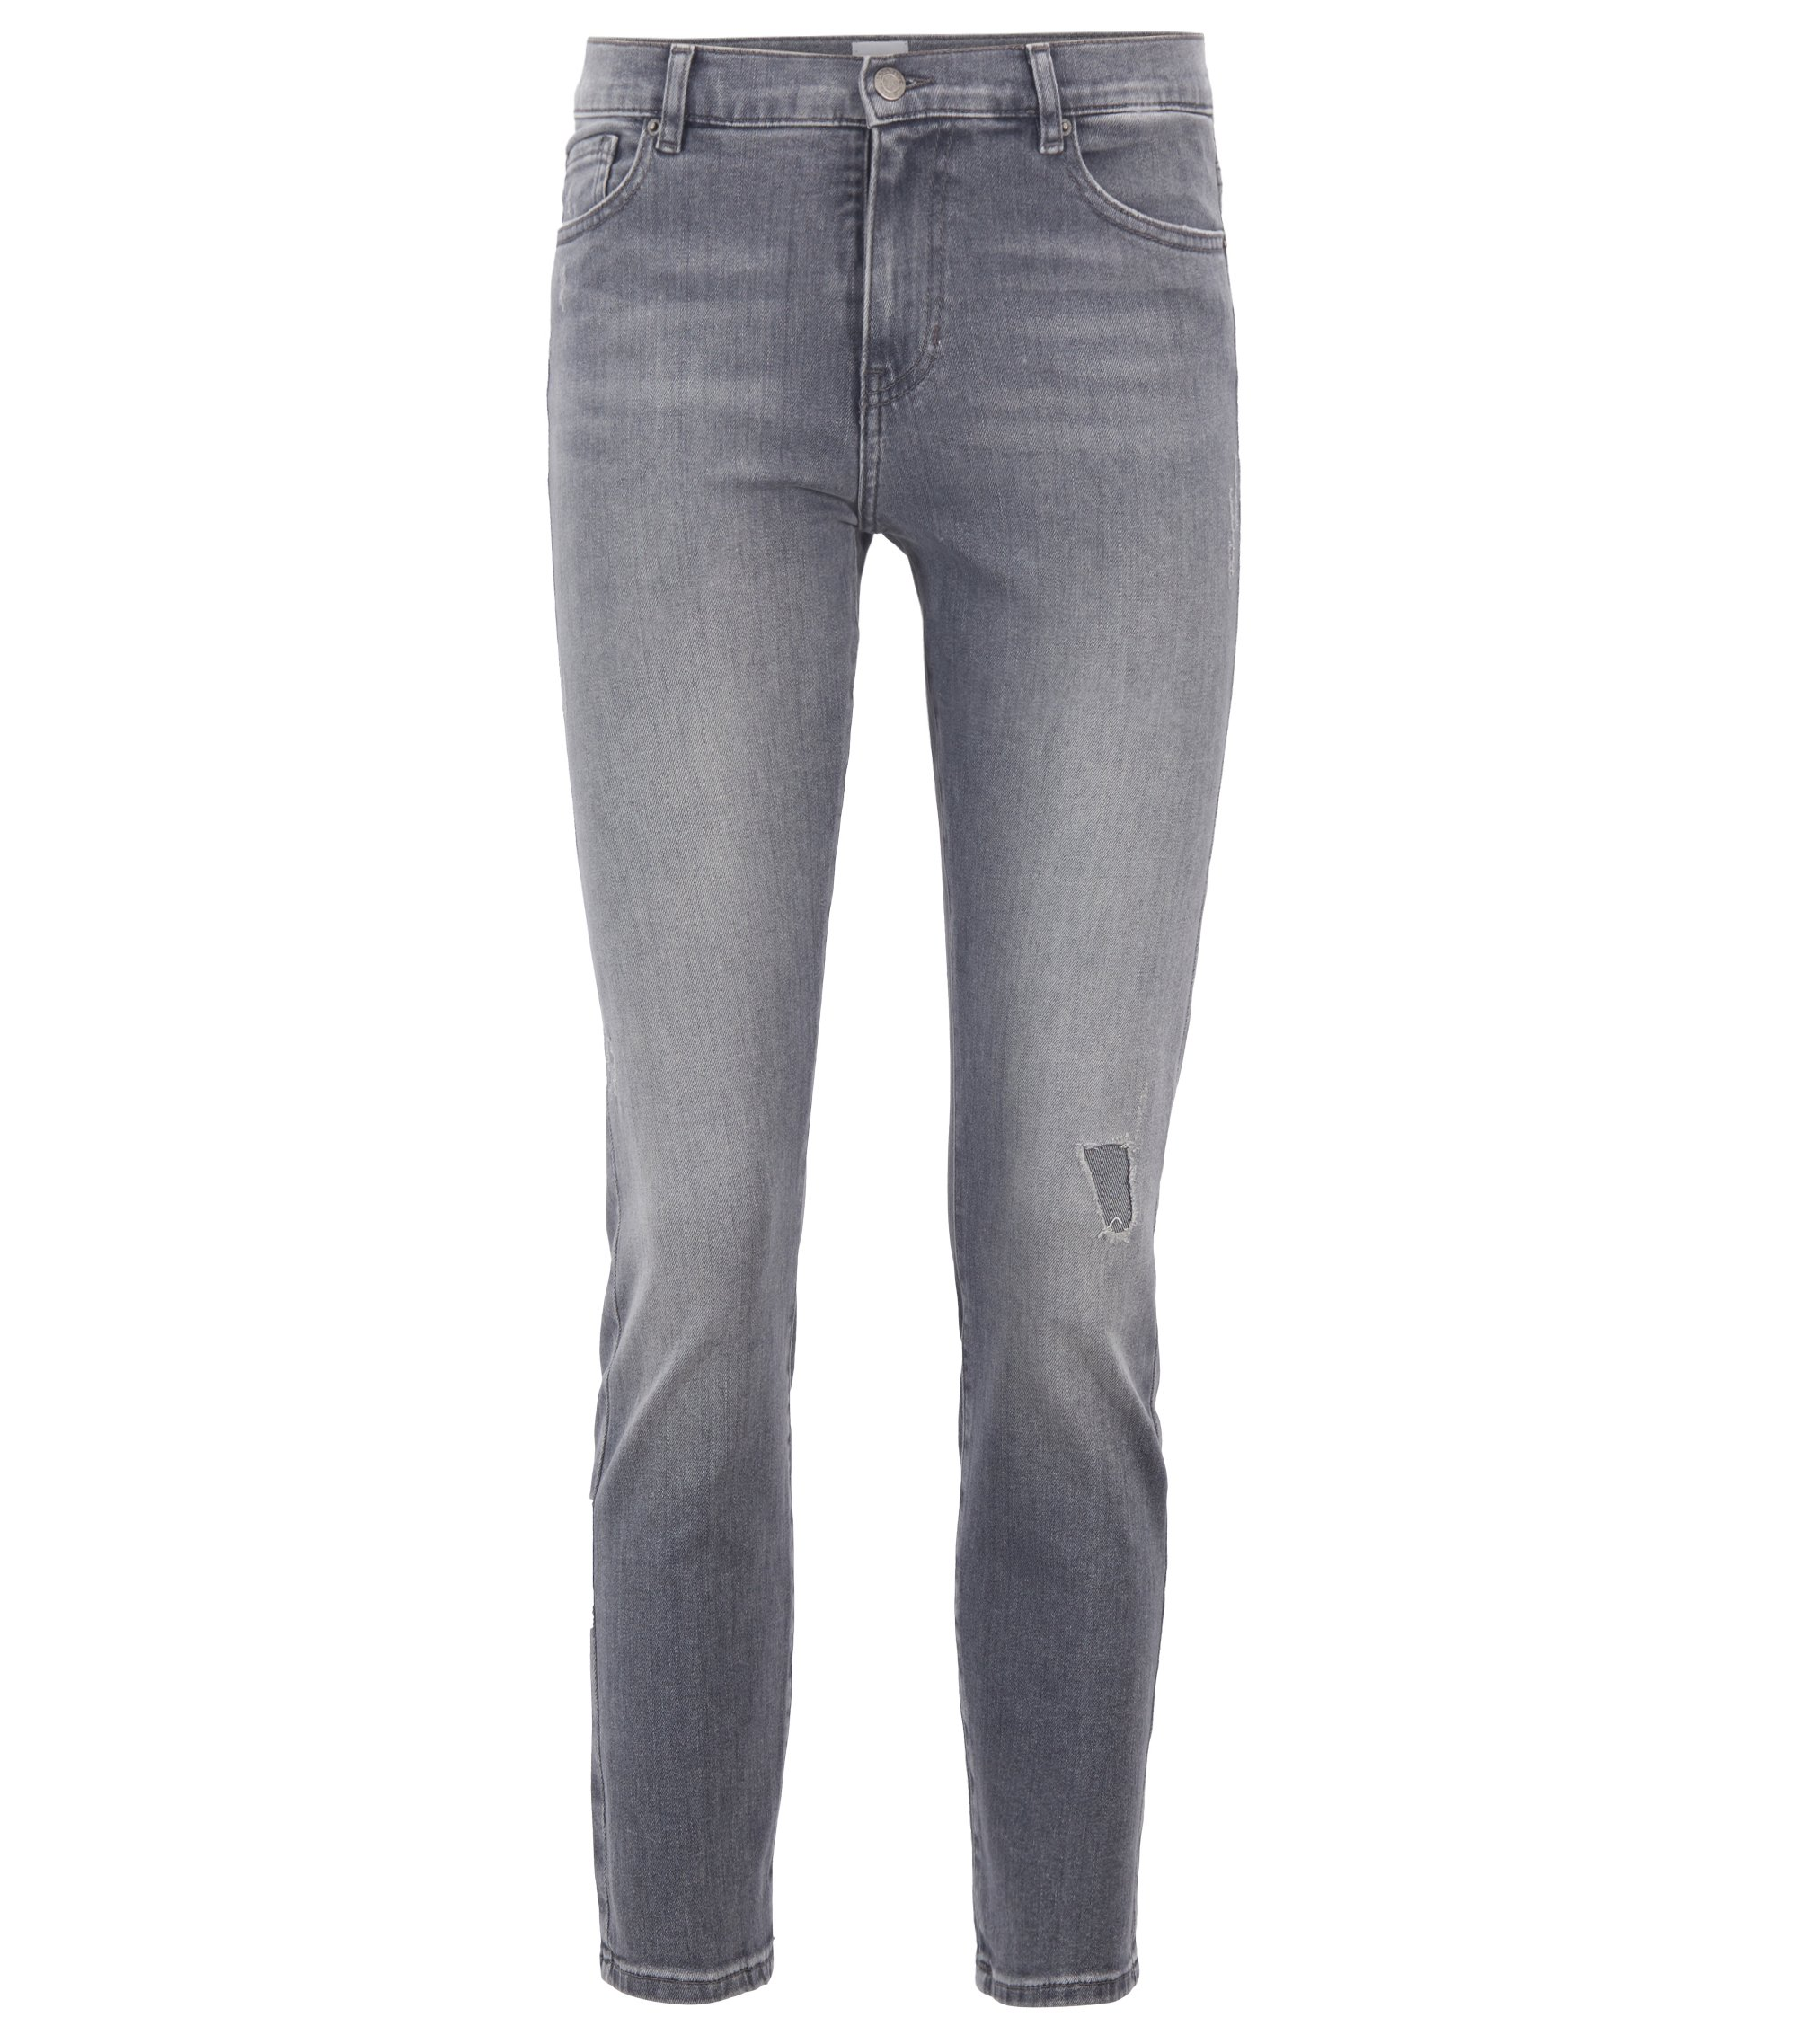 Slim-Fit Jeans aus Powerstretch-Denim, Grau